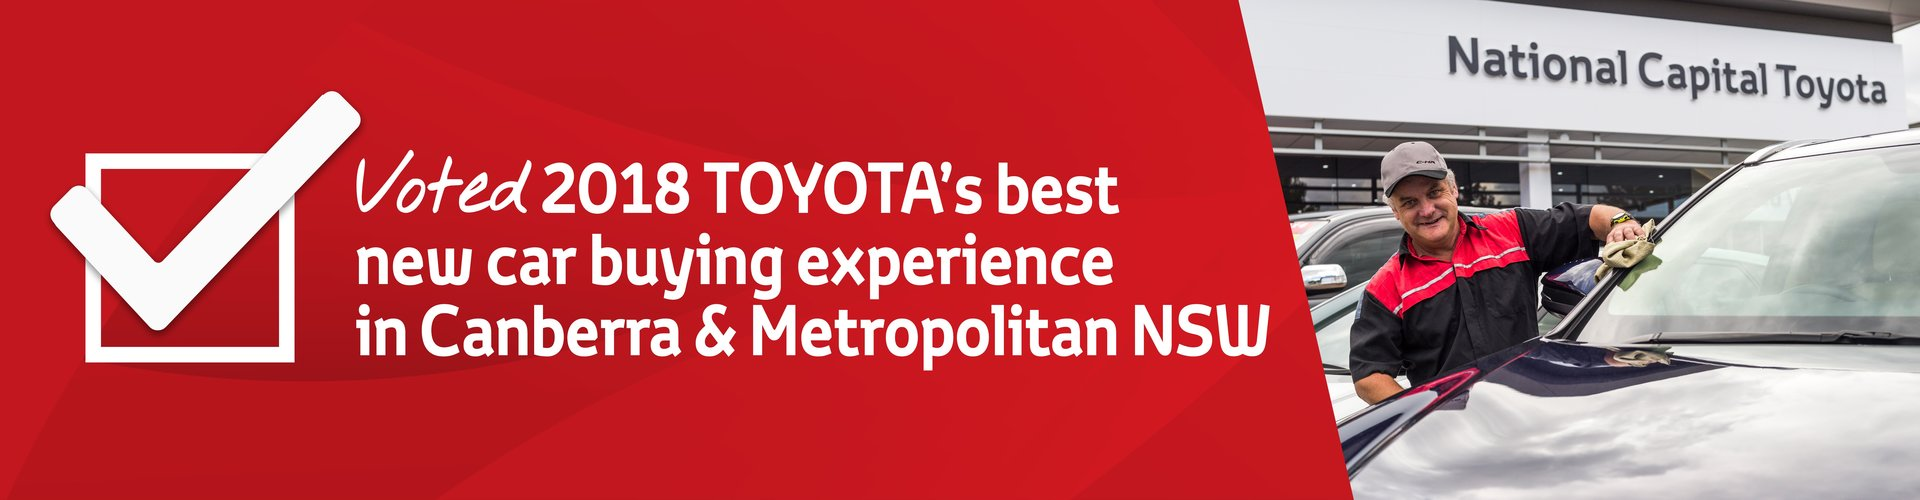 National Capital Toyota Best Service